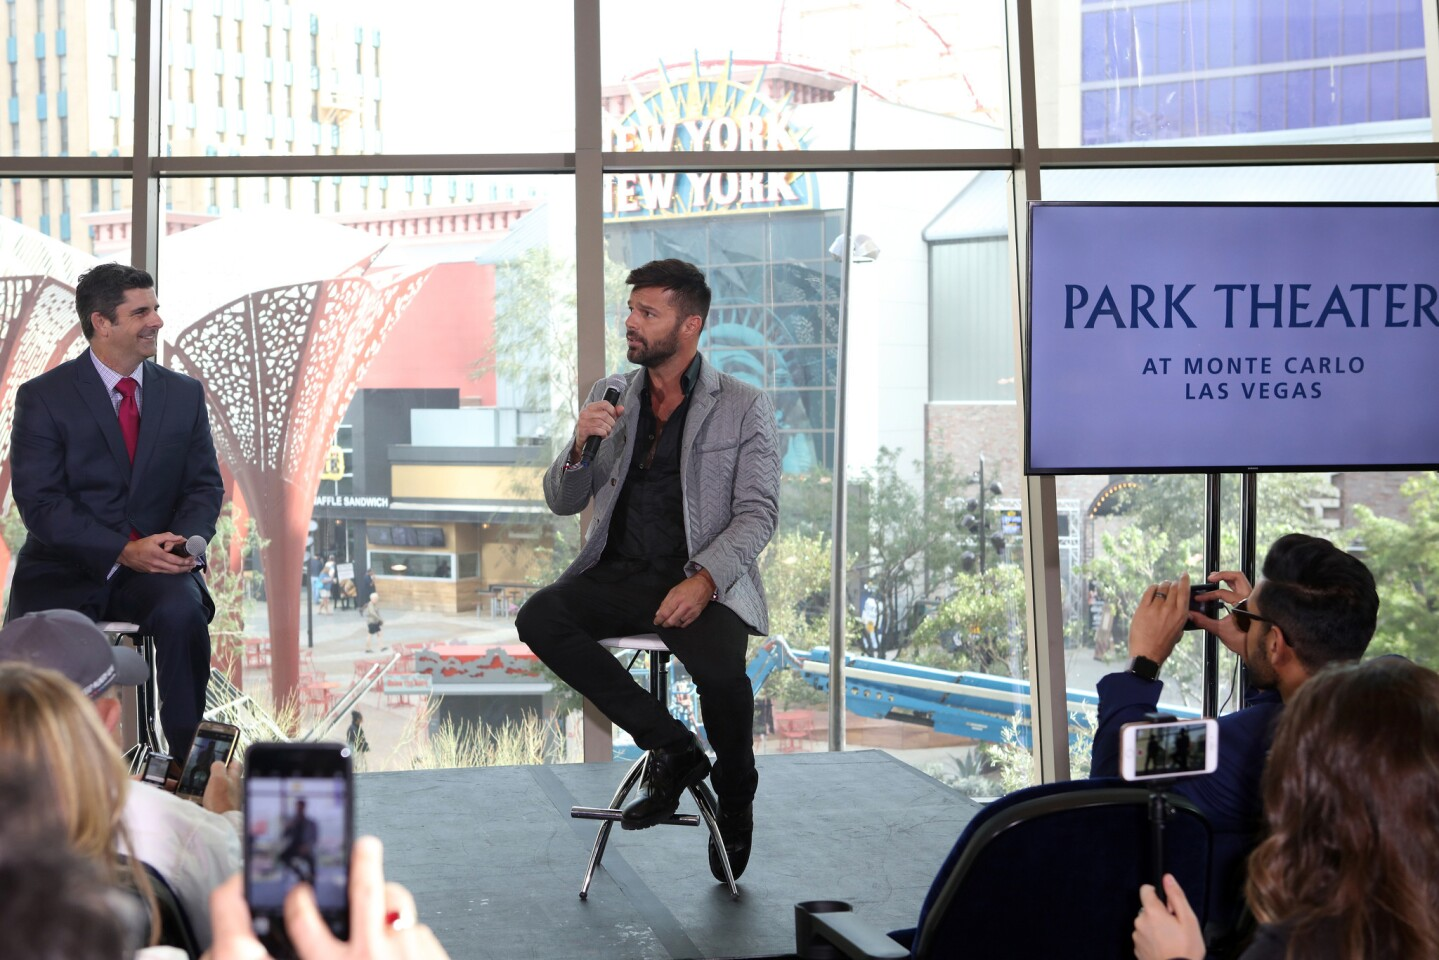 """Live Nation and MGM Resorts announce """"Ricky Martin"""" as their newest resident headliner at the new Park Theater at Monte Carlo on November 16, 2016 in Las Vegas, Nevada. (Photo by © Fanny Garcia/DDPixels)"""